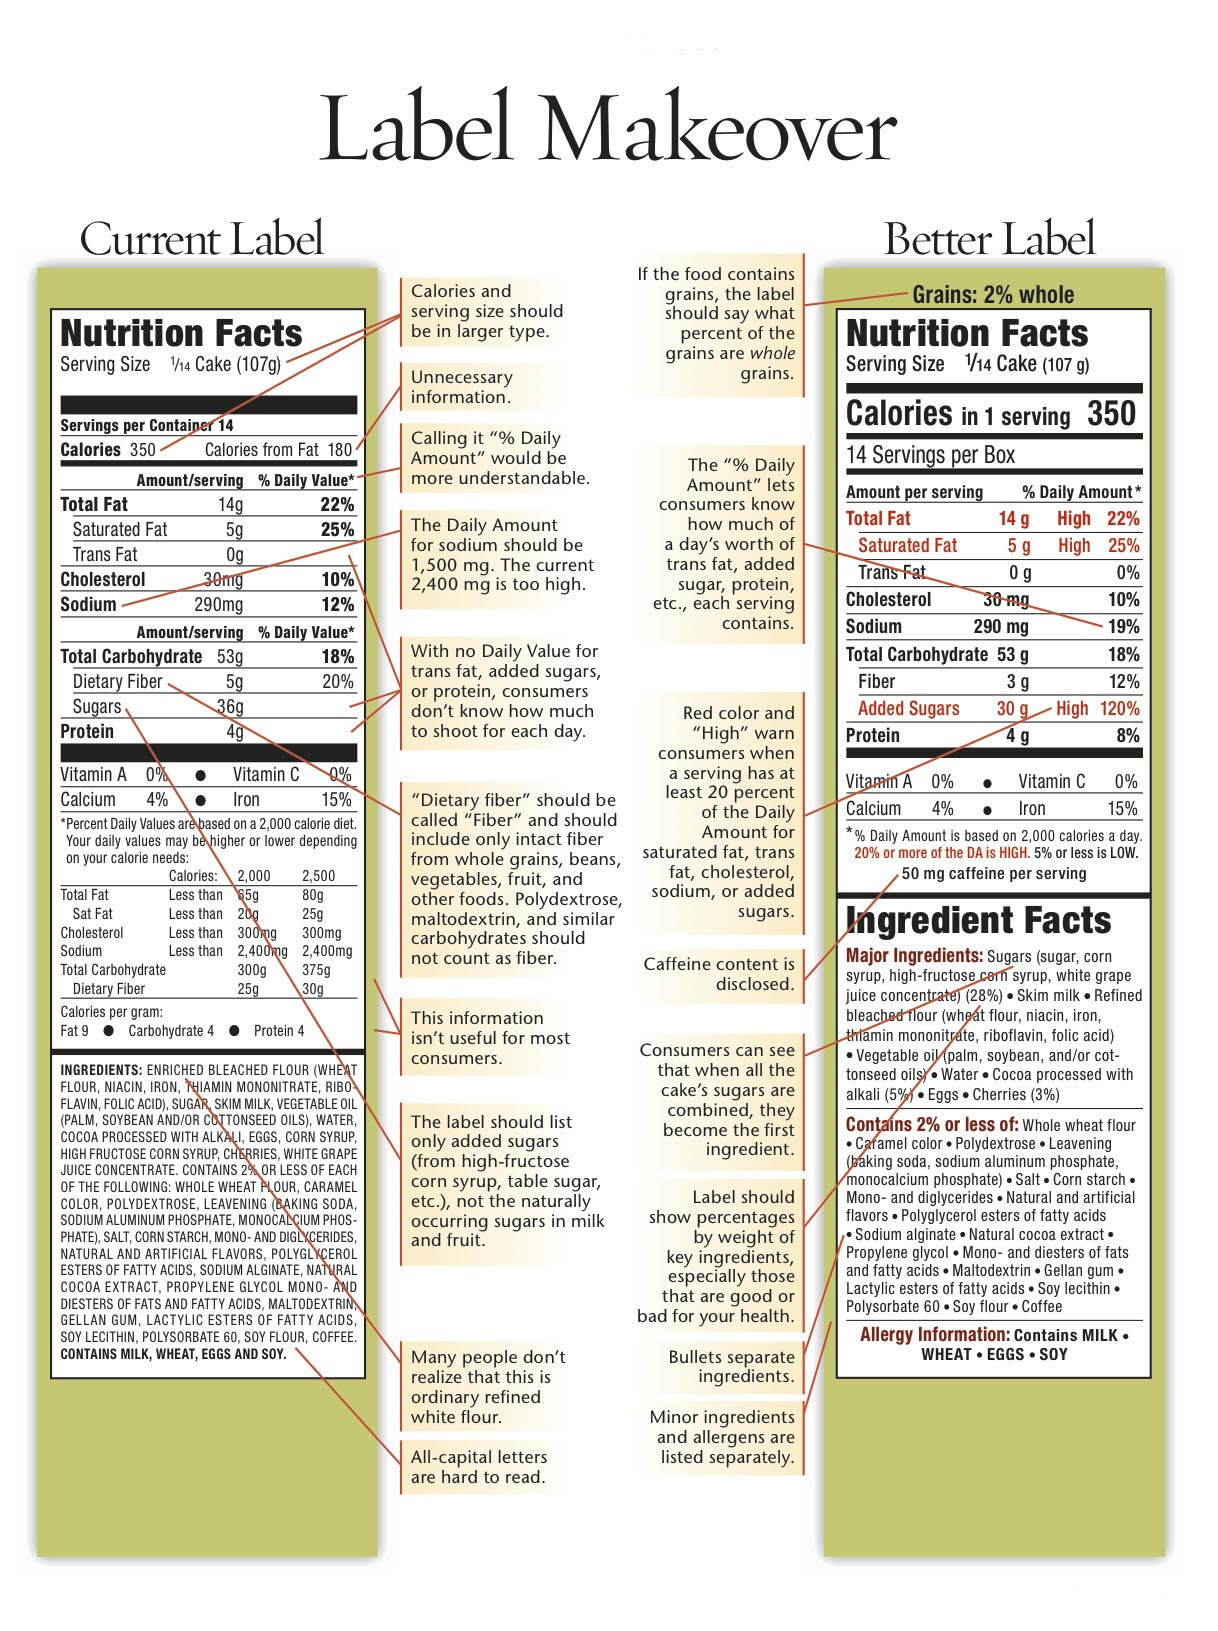 Better Nutrition Label for Food